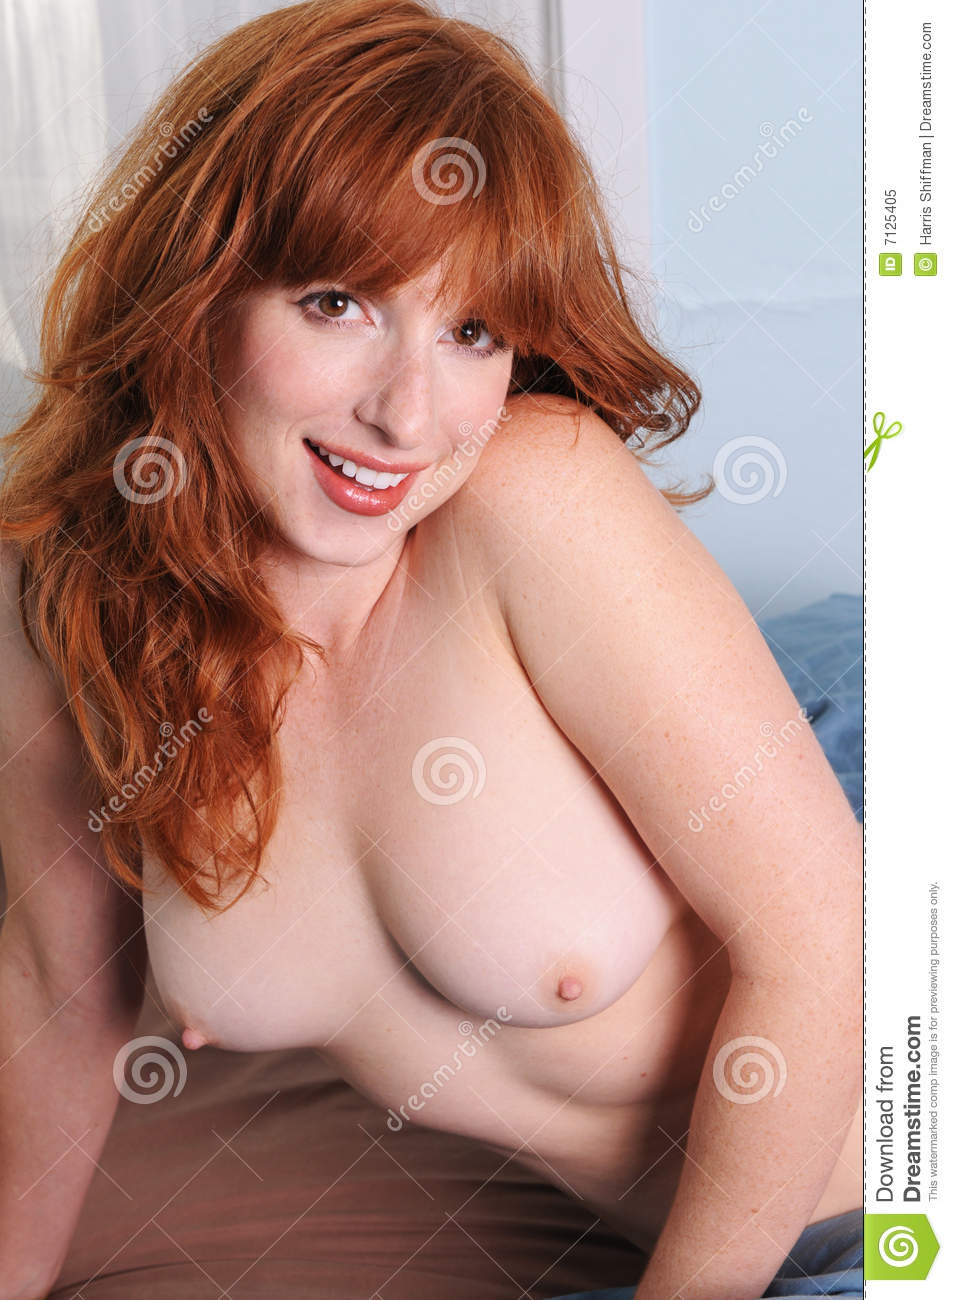 naked girls with freckles free movies